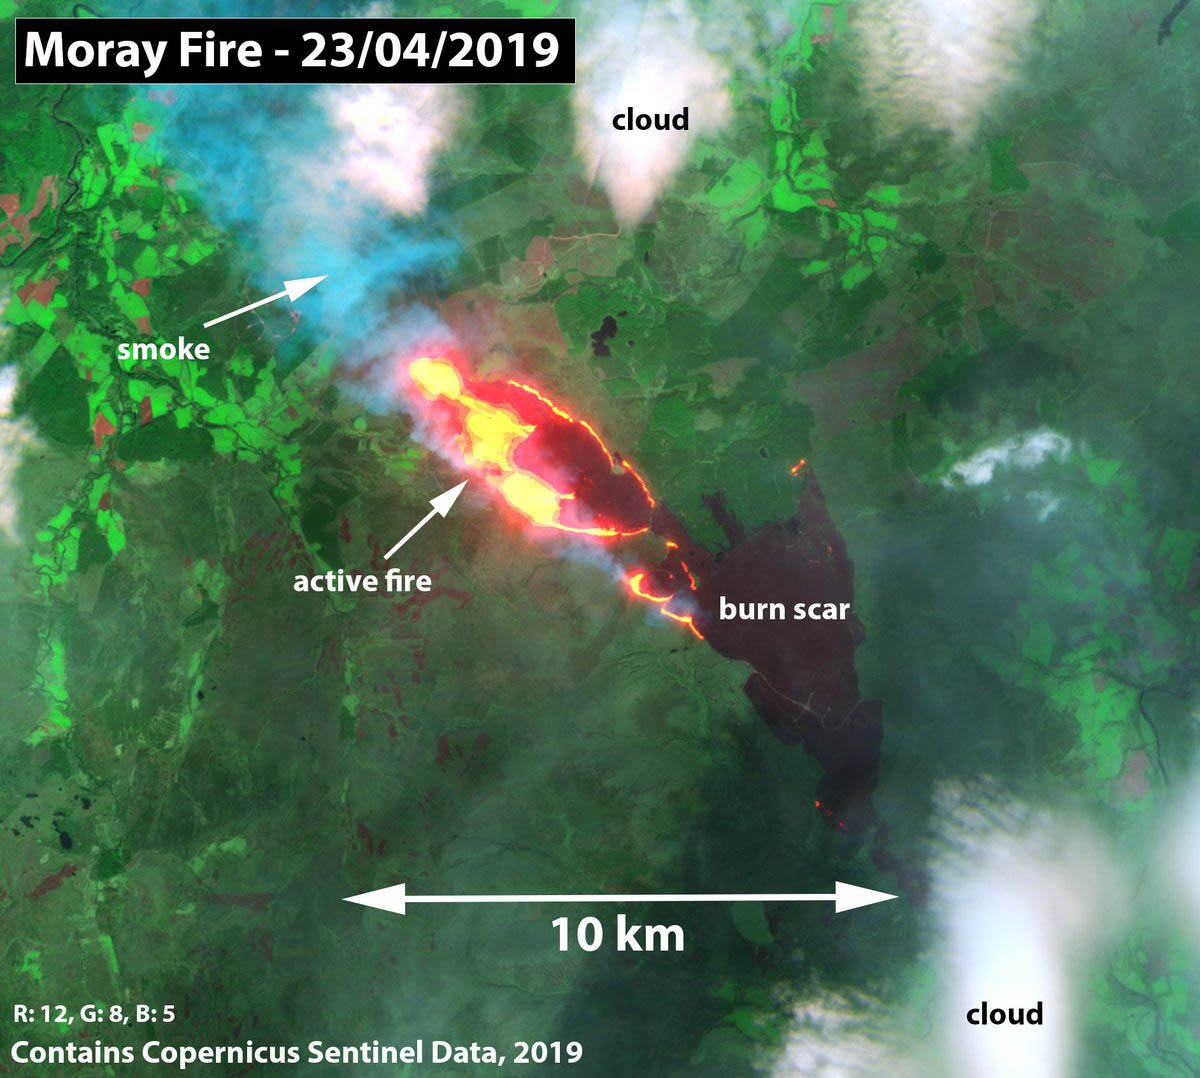 Satellite images showed the large areas impacted by the fire this week - Firefighters have been sent back to the scene of a major wildfire in Moray after the blaze reignited. It was said to have been dealt with by Thursday morning, but about six appliances have returned to the area around Knockando. The Scottish Fire and Rescue Service (SFRS) has battled several wildfires across the country in the past week. They included a blaze near Paul's Hill wind farm at Knockando which broke out on Monday. Crews helped to divert the fire from a building where electricity is routed. The fire which started on Paul's Hill is currently burning near Berry Burn wind farm. The Paul's Hill wind farm, which consists of 28 turbines, is operated by Fred Olsen Renewables. Stuart Naylor, UK operations manager for the company, praised the efforts of firefighters, as well as others who helped, such as gamekeepers. Picture: NCEOscience/Universal News And Sport (Scotland) 25/04/2019